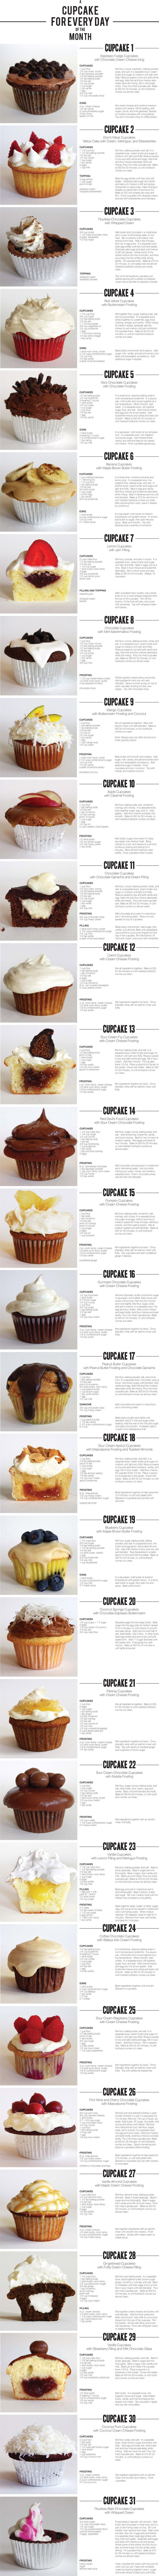 A cupcake for every day of the month #infographic - infographie - www.eewee.fr